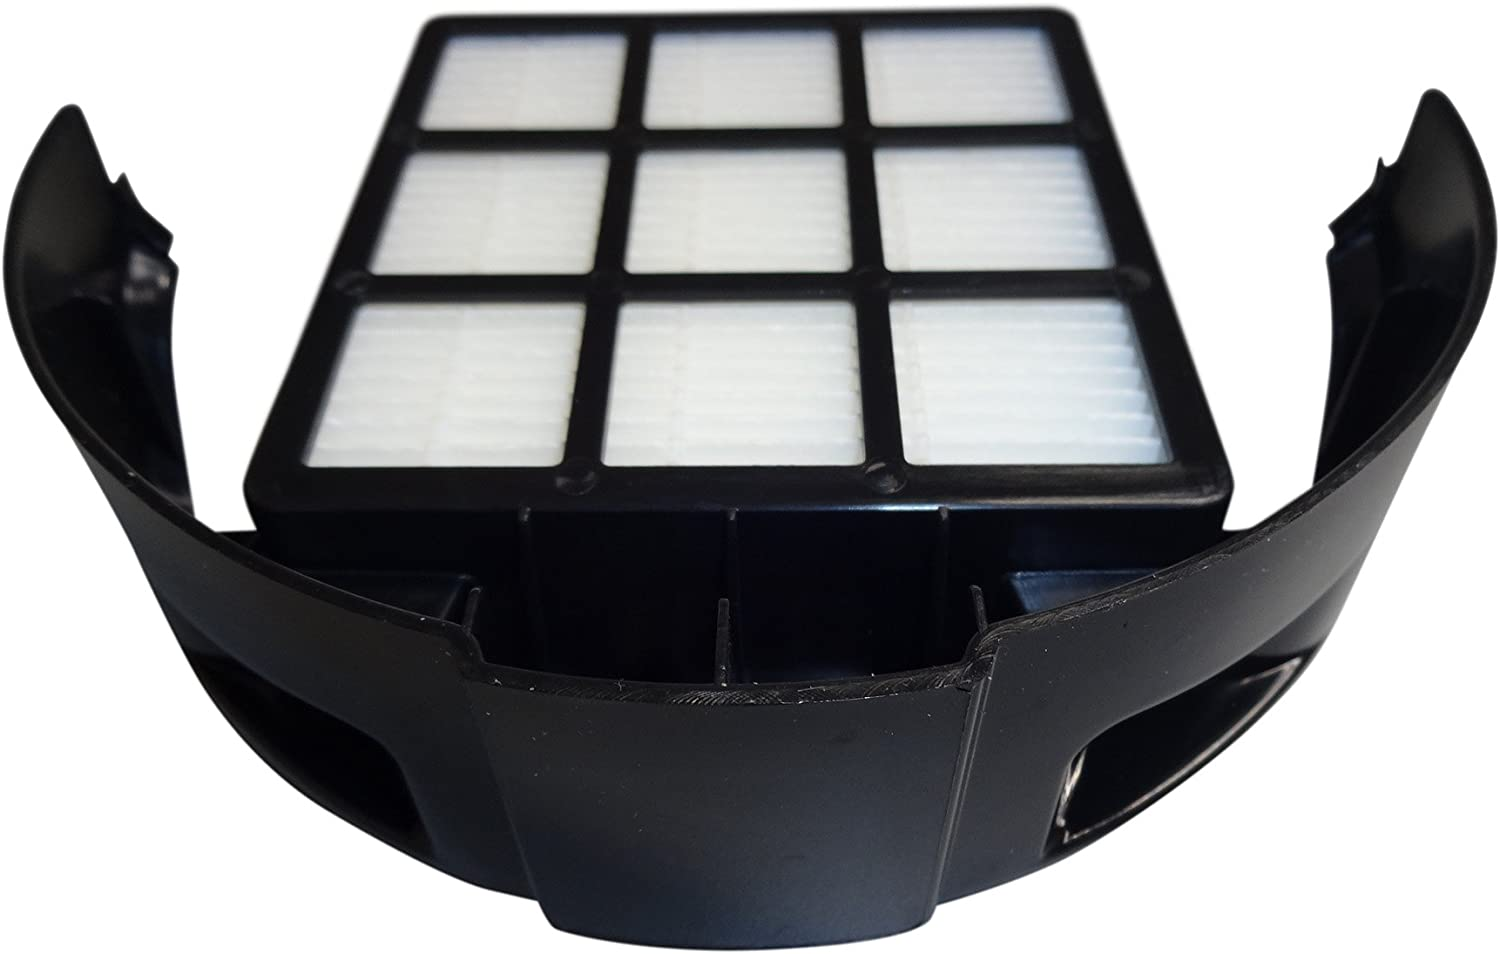 Best Vacuum Filter Compatible with Hoover T-Series WindTunnel HEPA Vacuum Filter for UH70100, Rewind UH70110, Rewind Plus UH70120 Replaces Hoover 3031172001